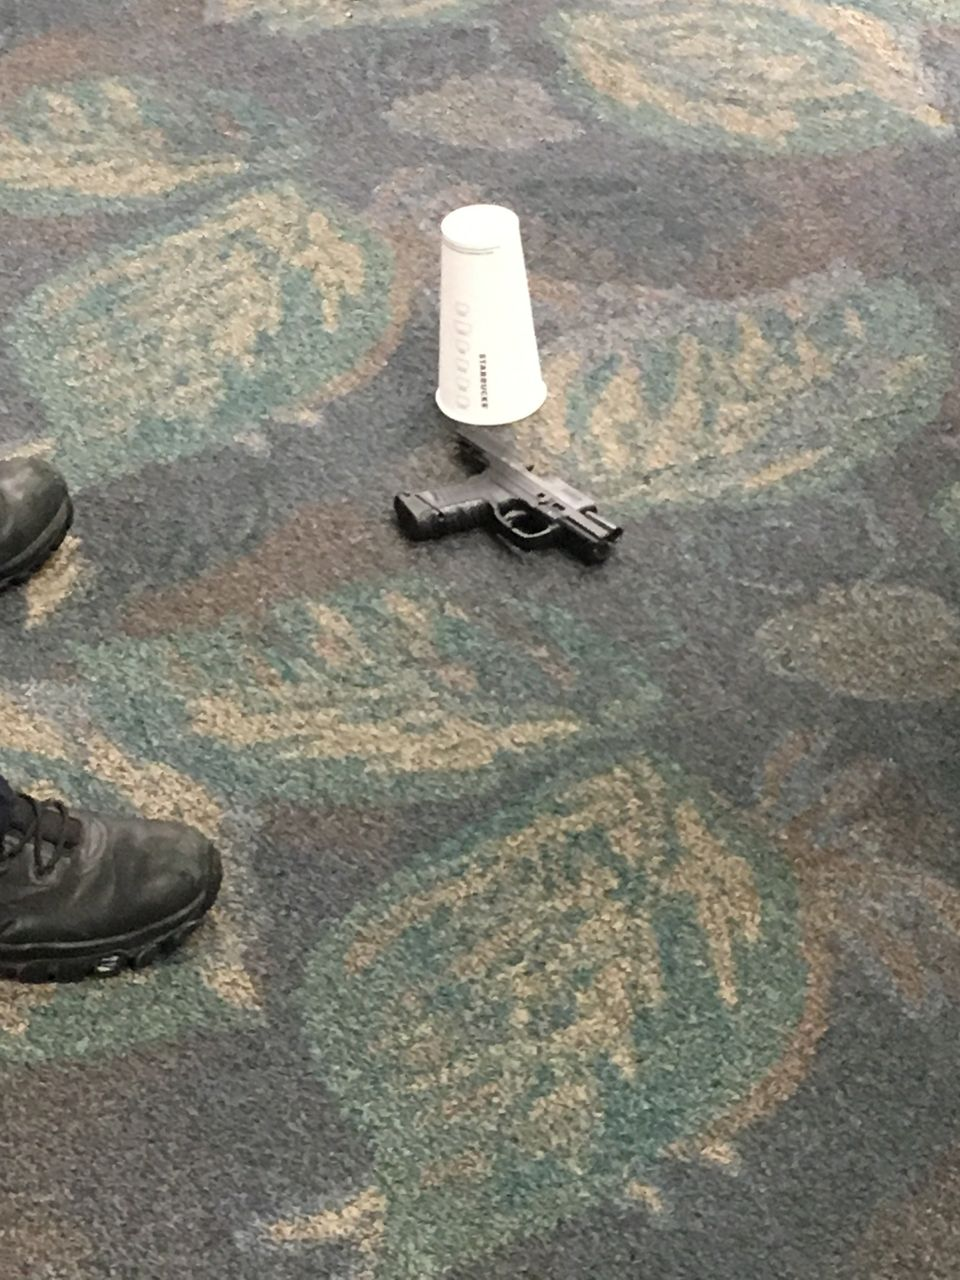 The gun used in the shooting at Ft. Lauderdale-Hollywood International airport that killed 5 people and injured 8.